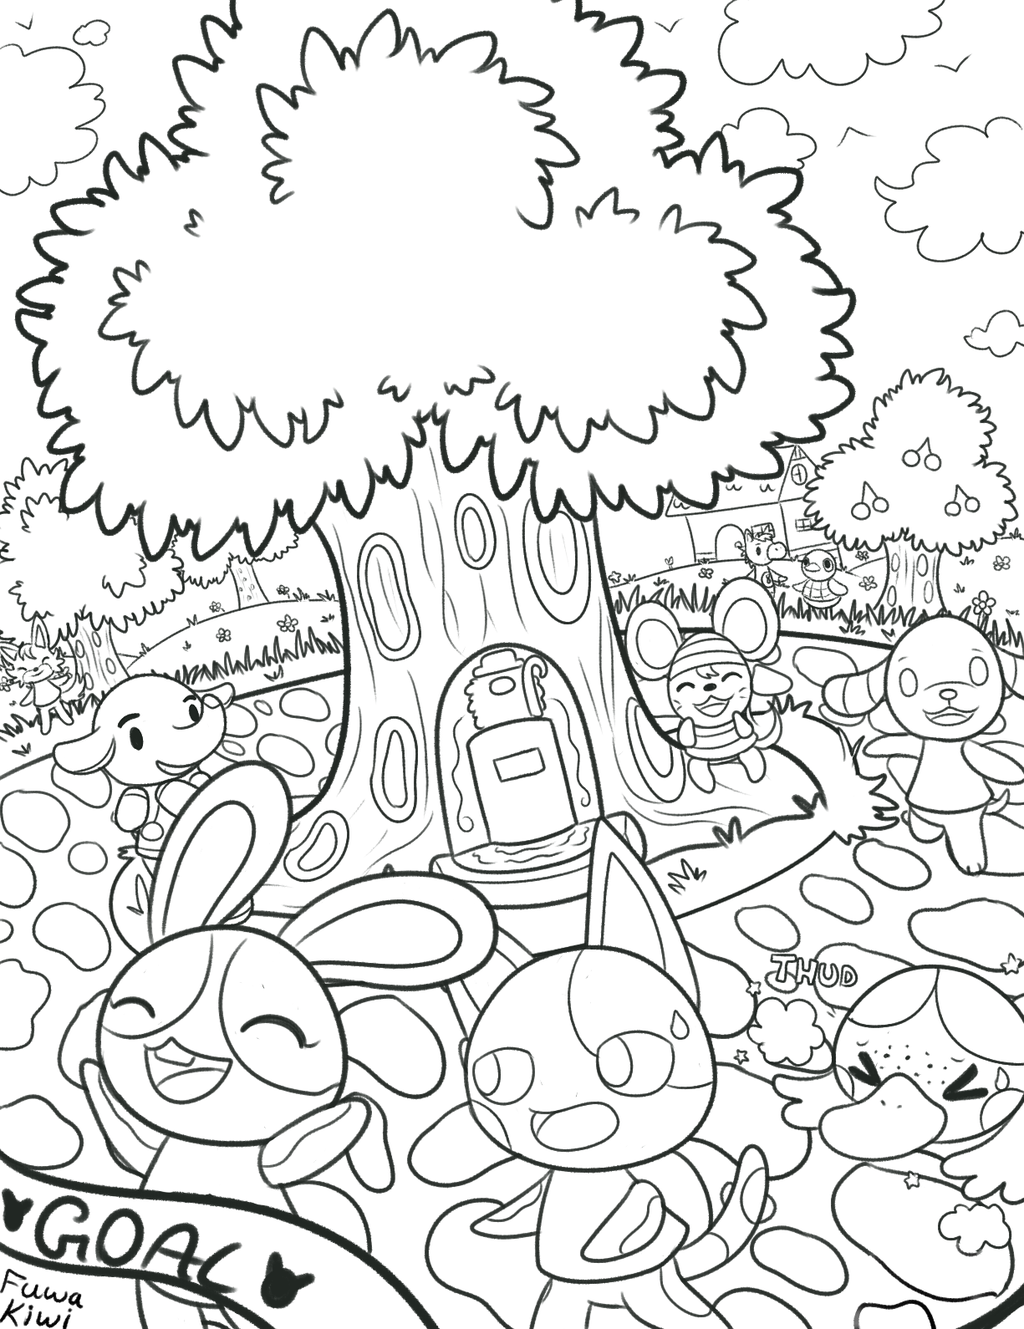 It's just an image of Punchy animal crossing coloring pages